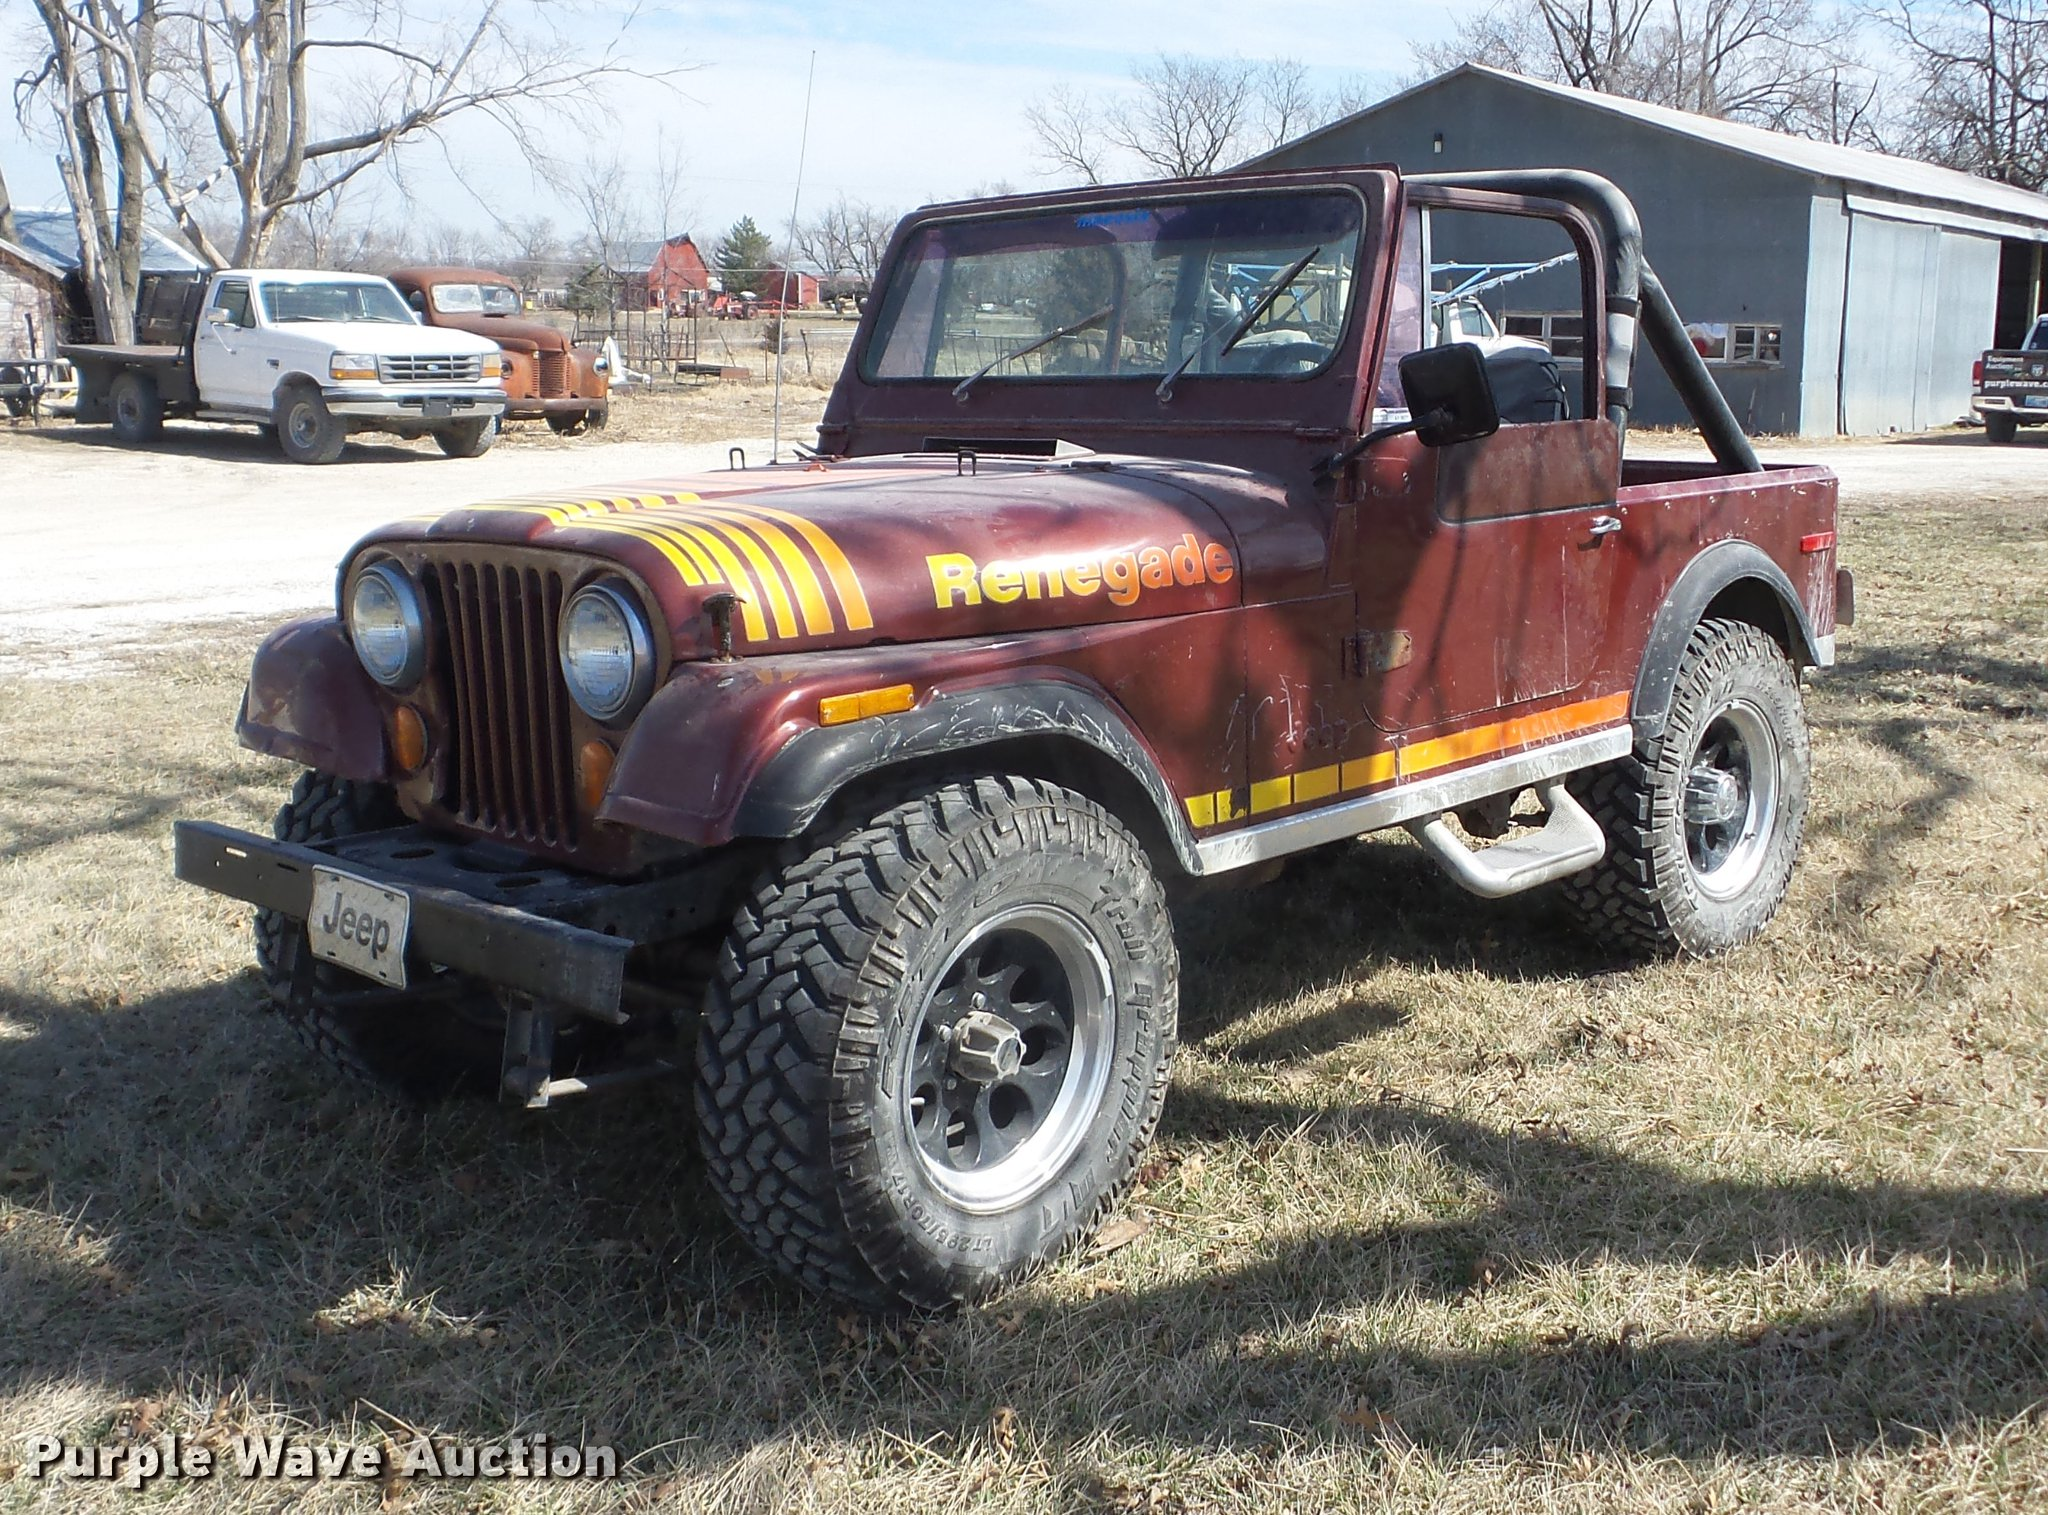 1980 Jeep CJ7 Renegade Item AY9577